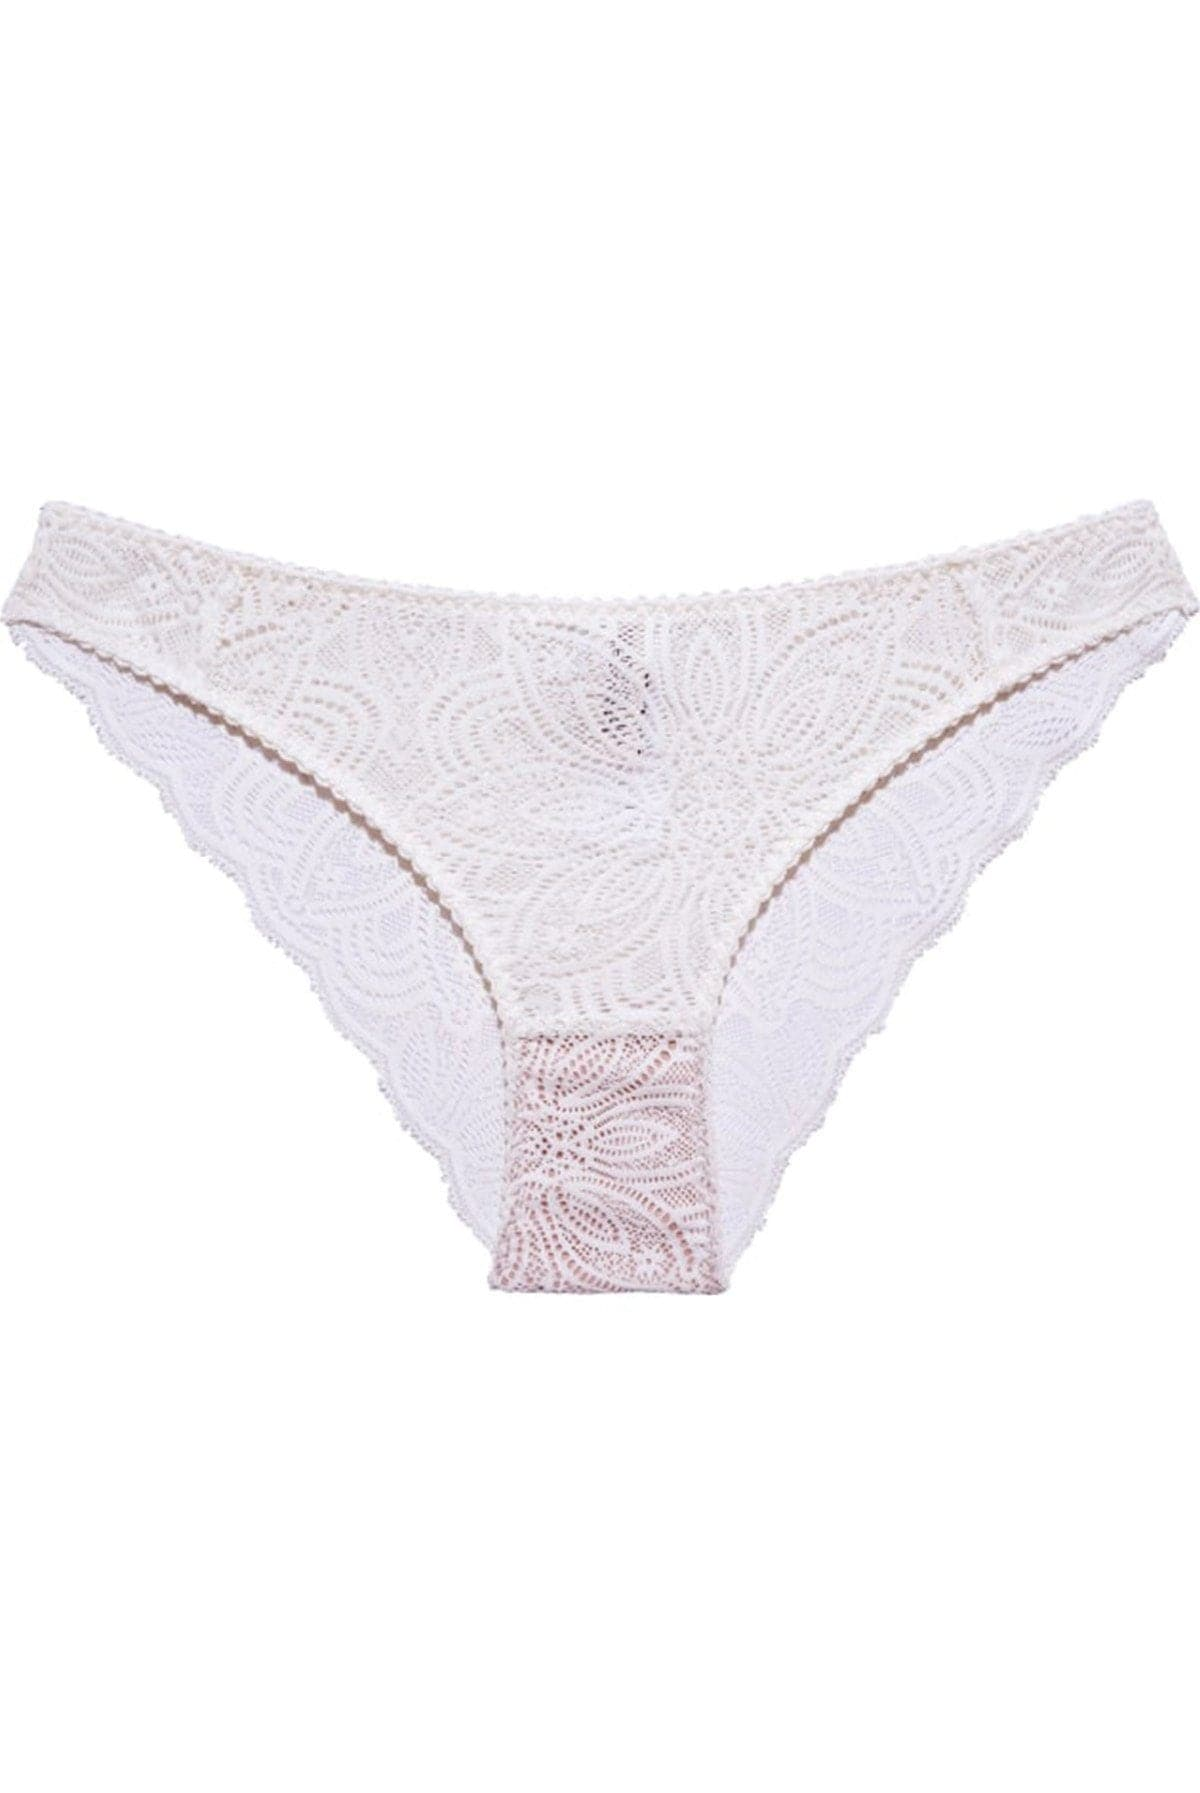 underprotection sustainable underwear white lace pants womanhood